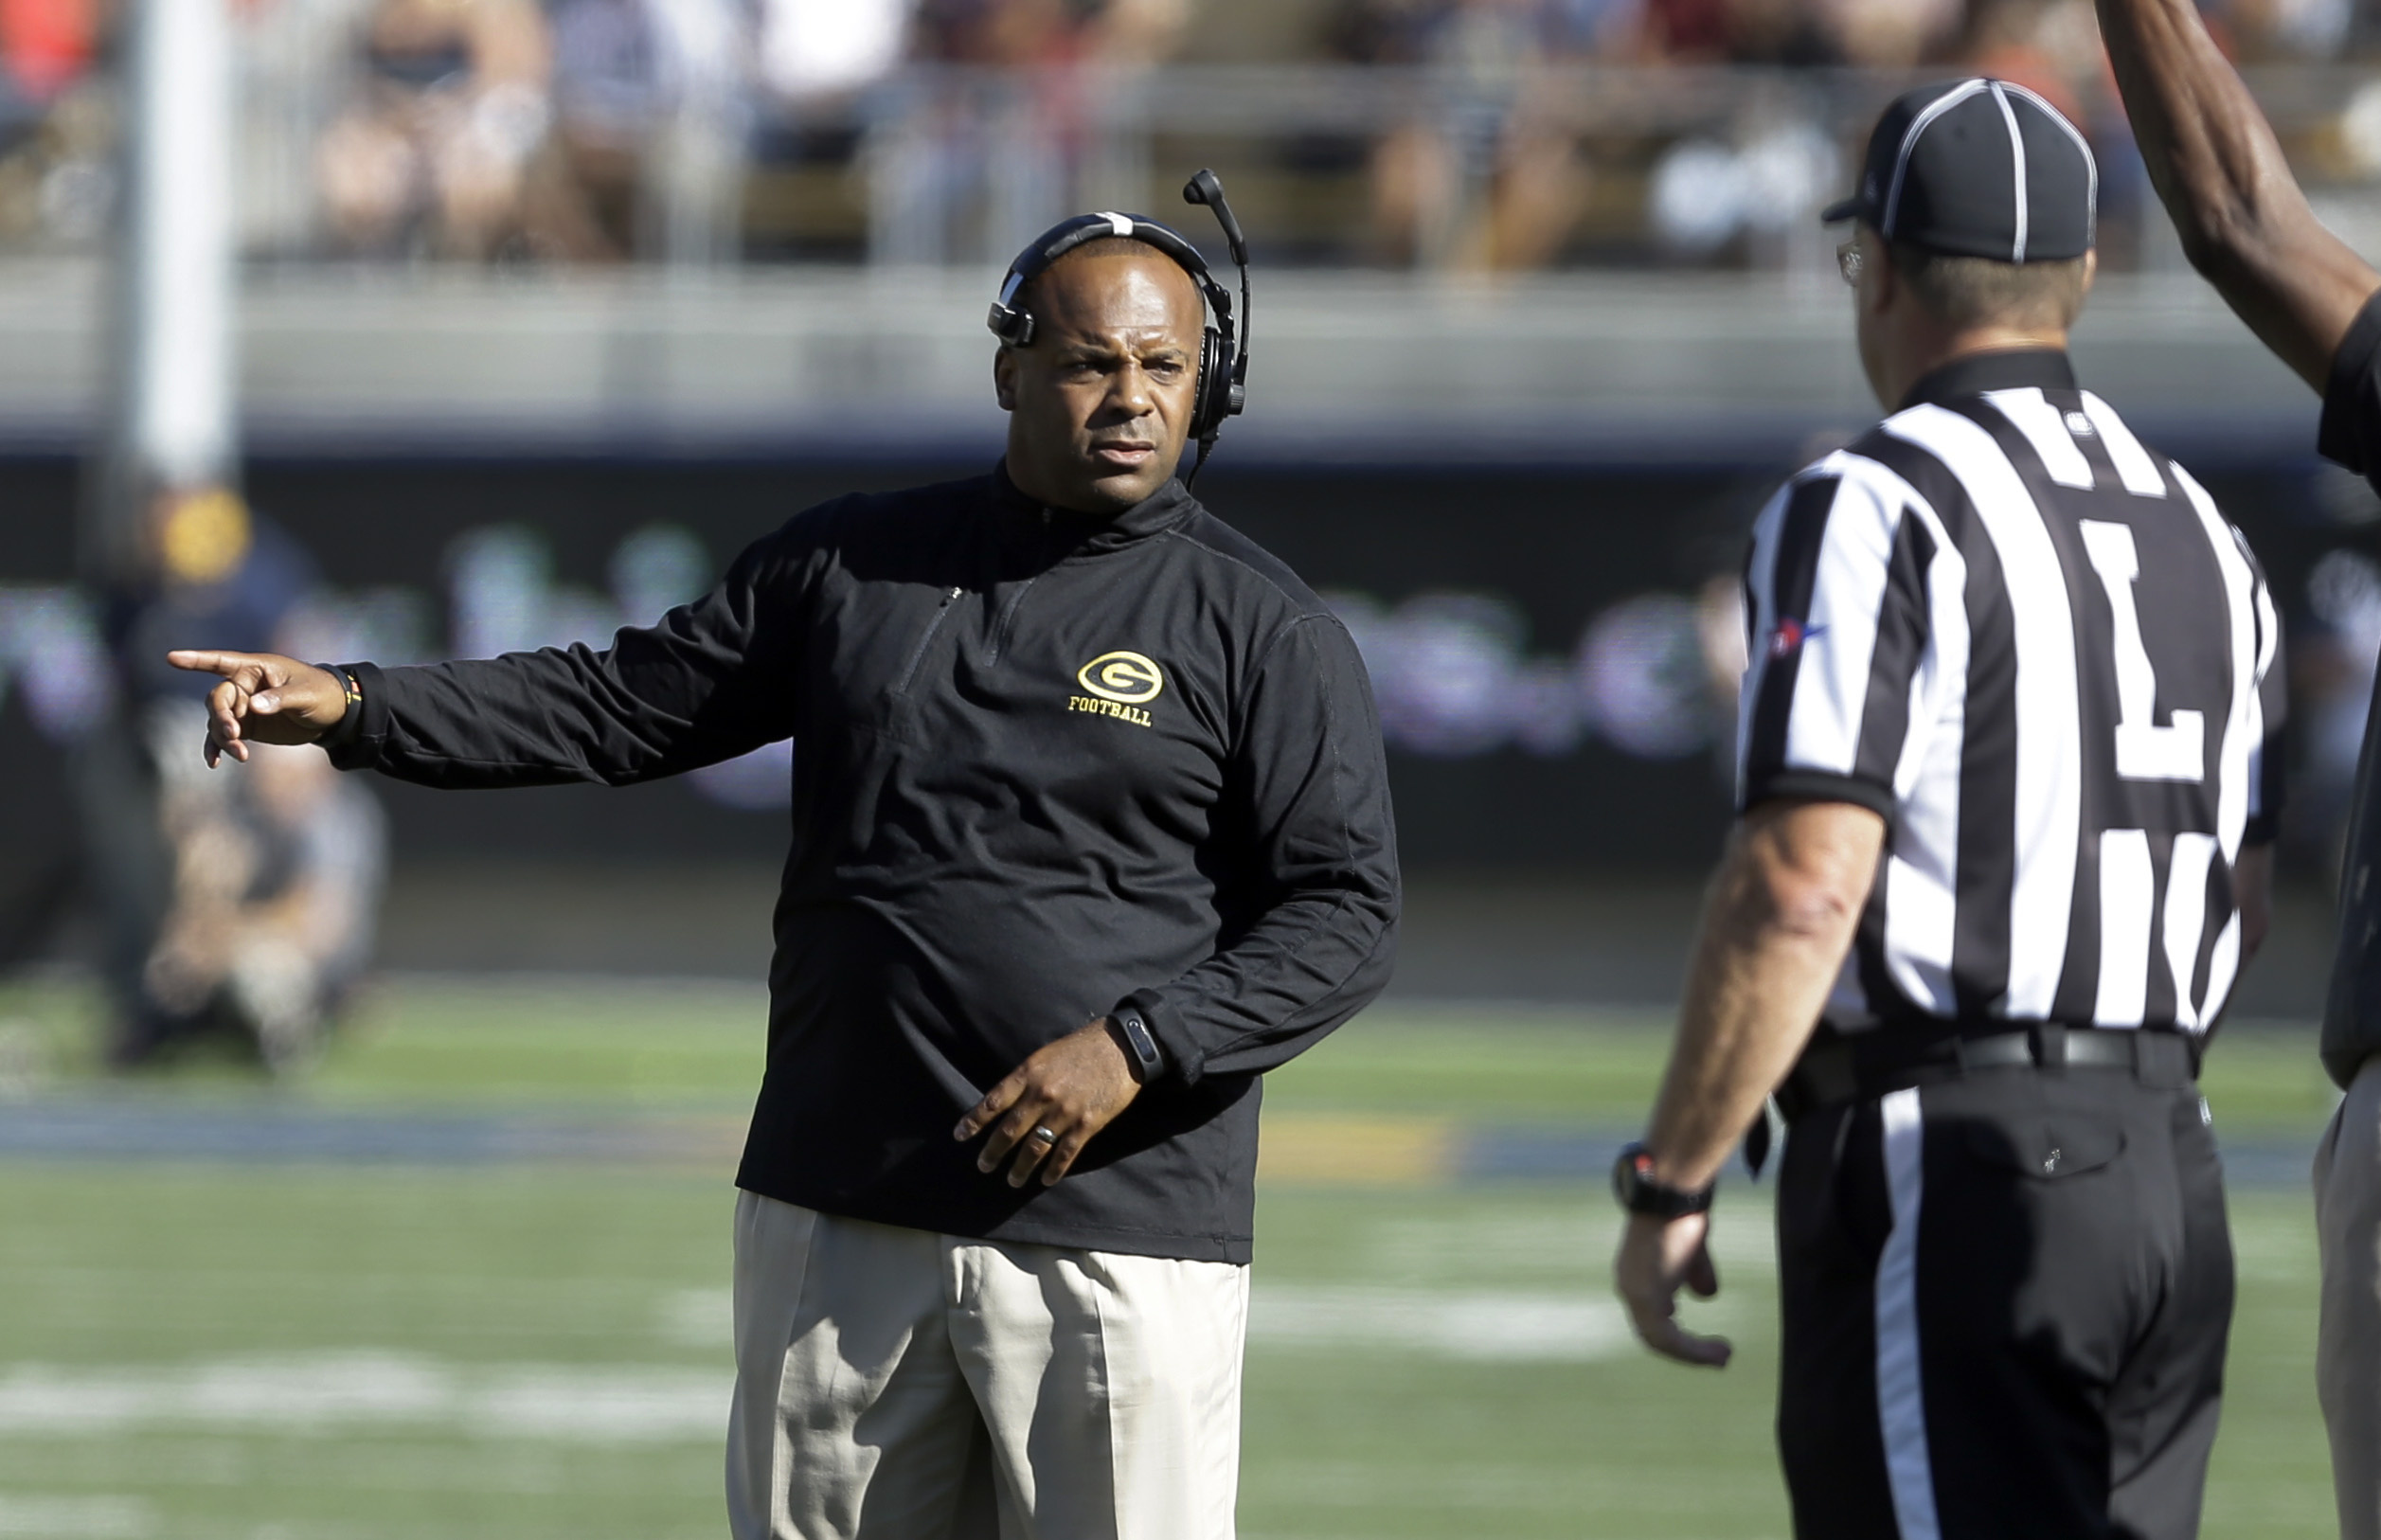 FILE - In this Sept. 5, 2015 file photo, Grambling State coach Broderick Fobbs, left, talks with an official during the second half of an NCAA college football game against Californiain Berkeley, Calif. Arizona host Grambling State on Saturday.  (AP Photo